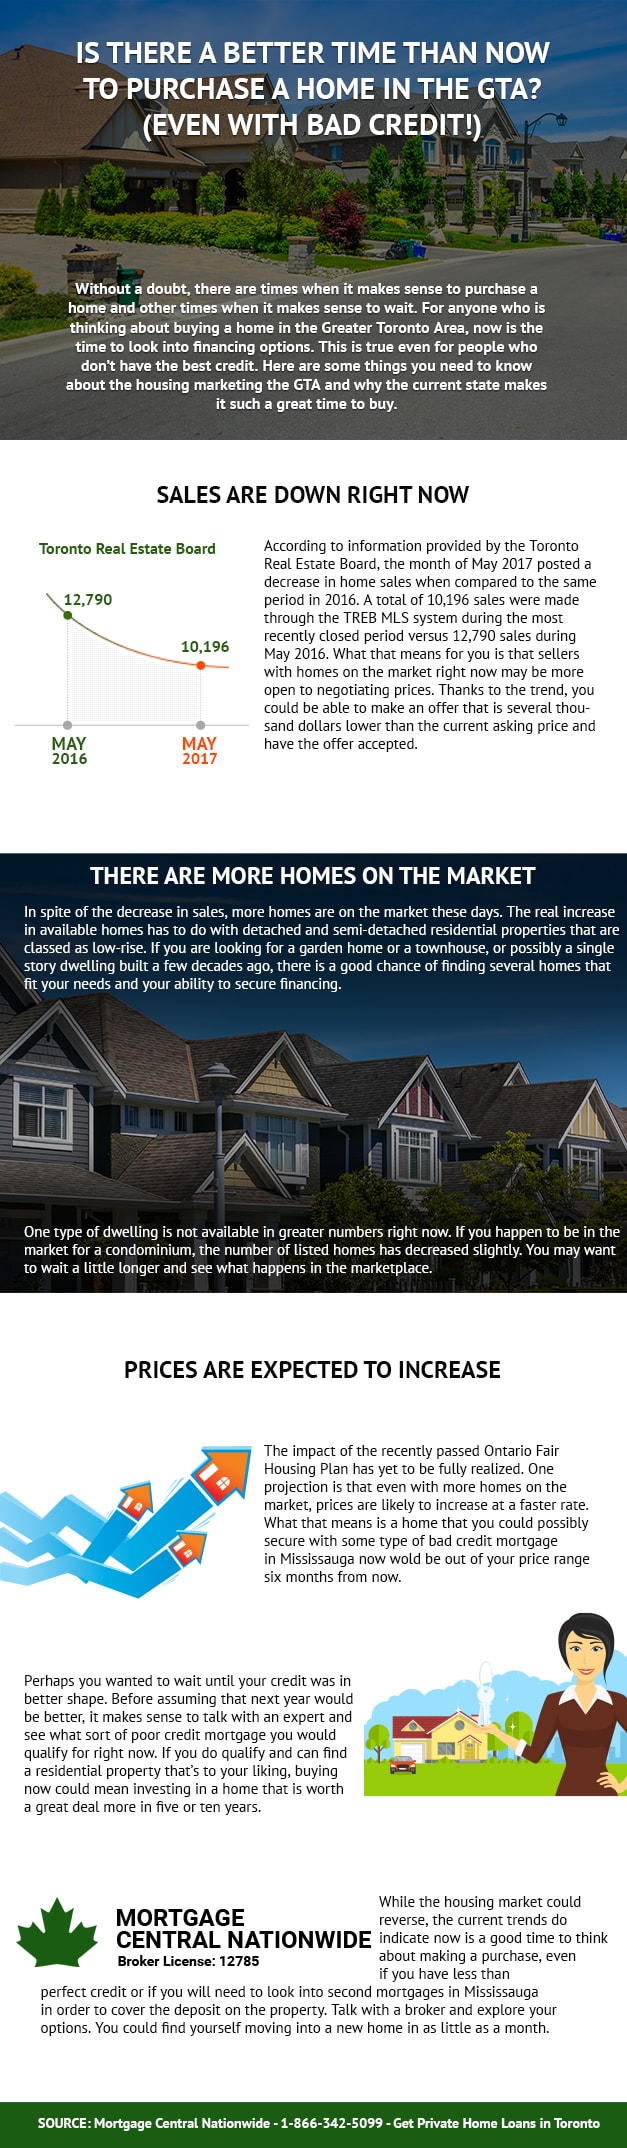 Is There a Better Time Than Now to Purchase a Home in the GTA? - Infographic